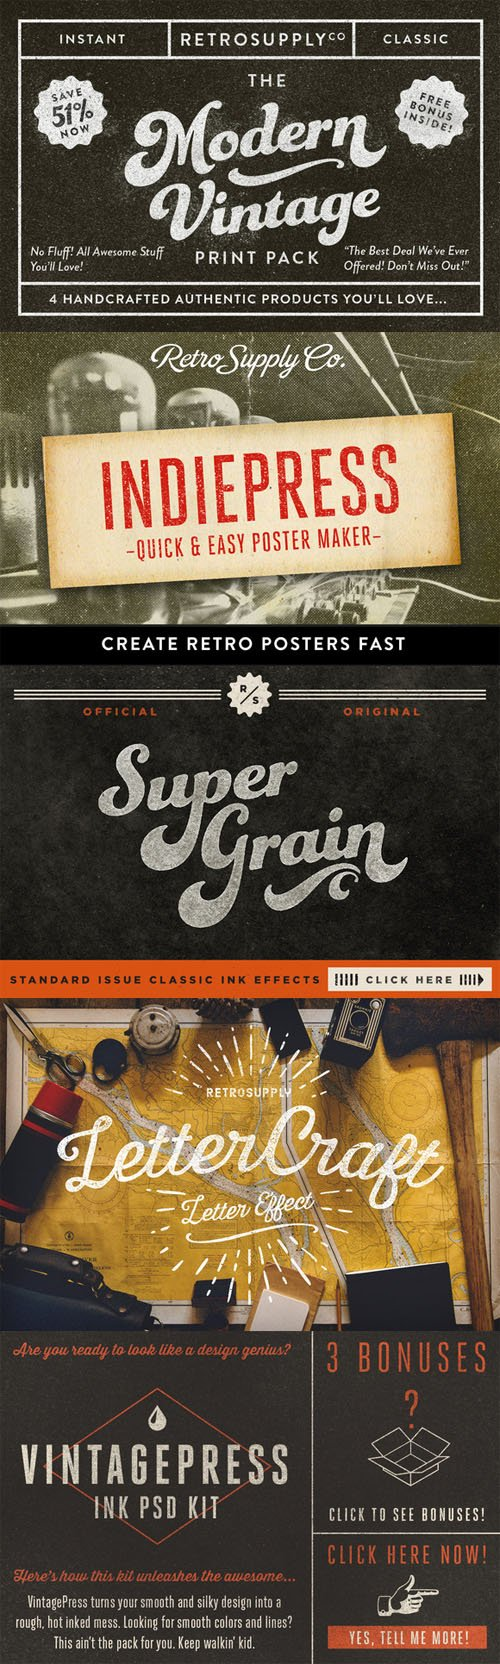 The Modern Vintage Print Pack - Creativemarket 94167